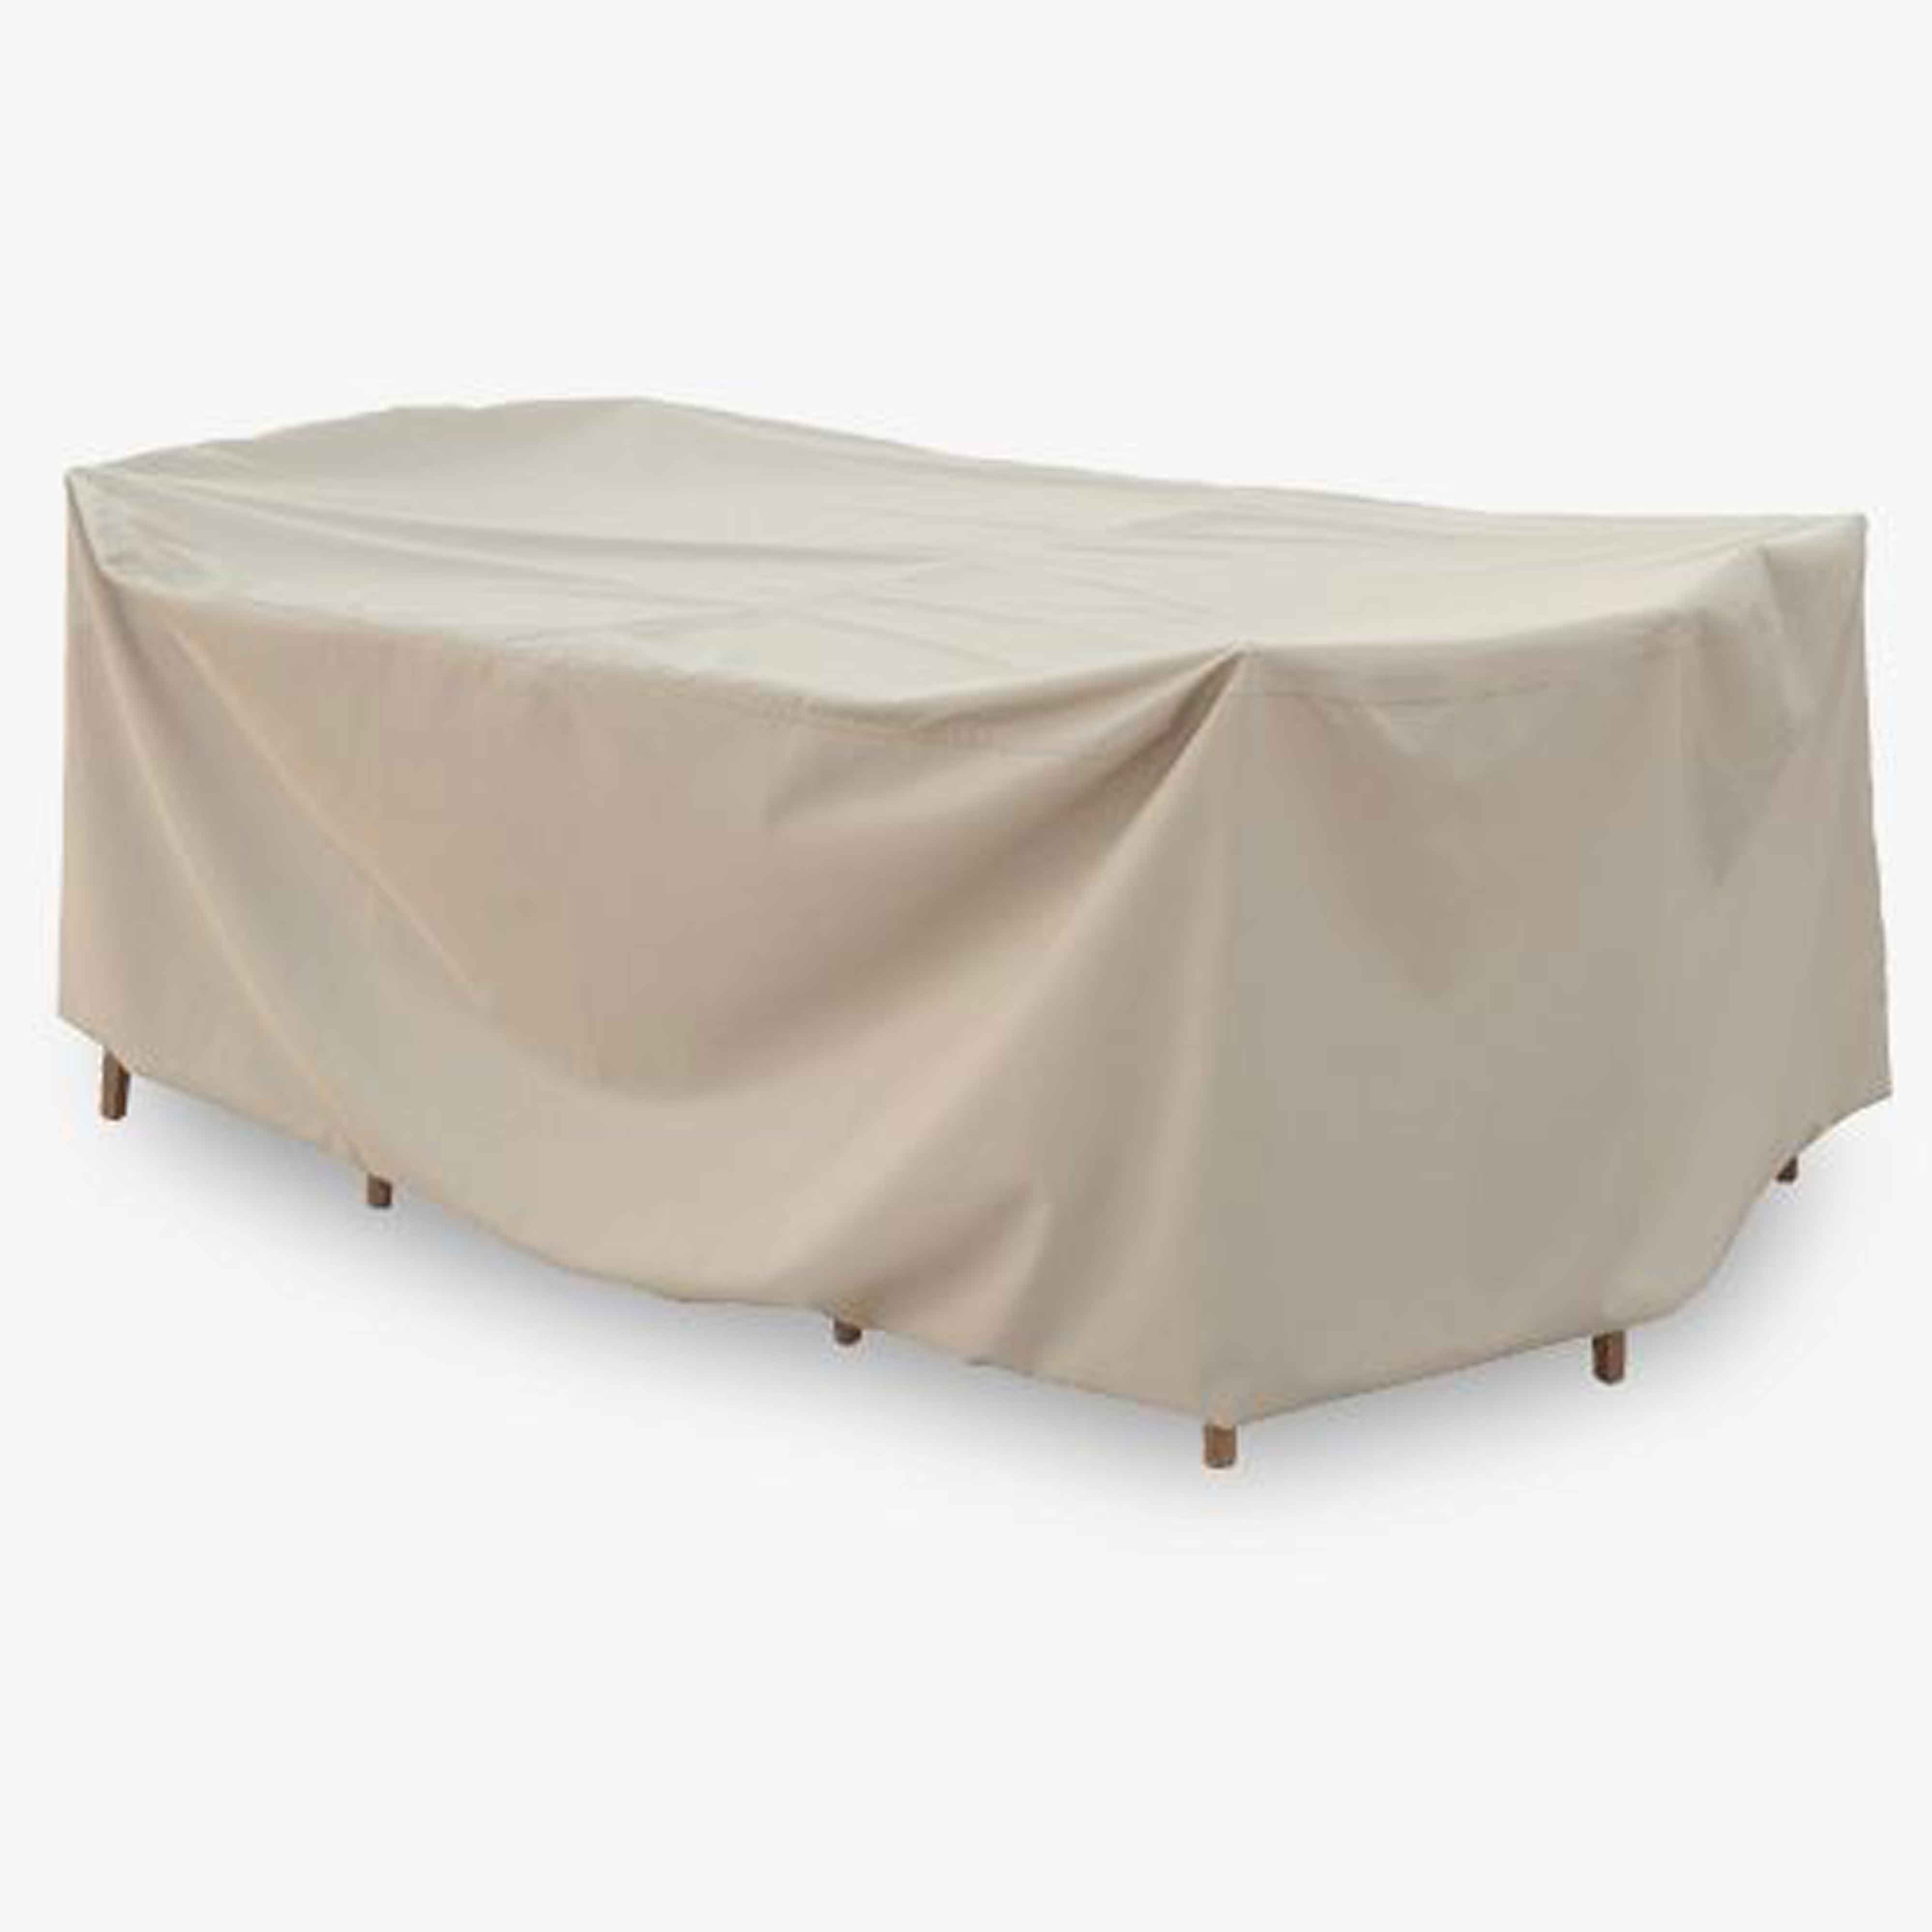 chair covers garden perego high treasure small oval rectangle table cover